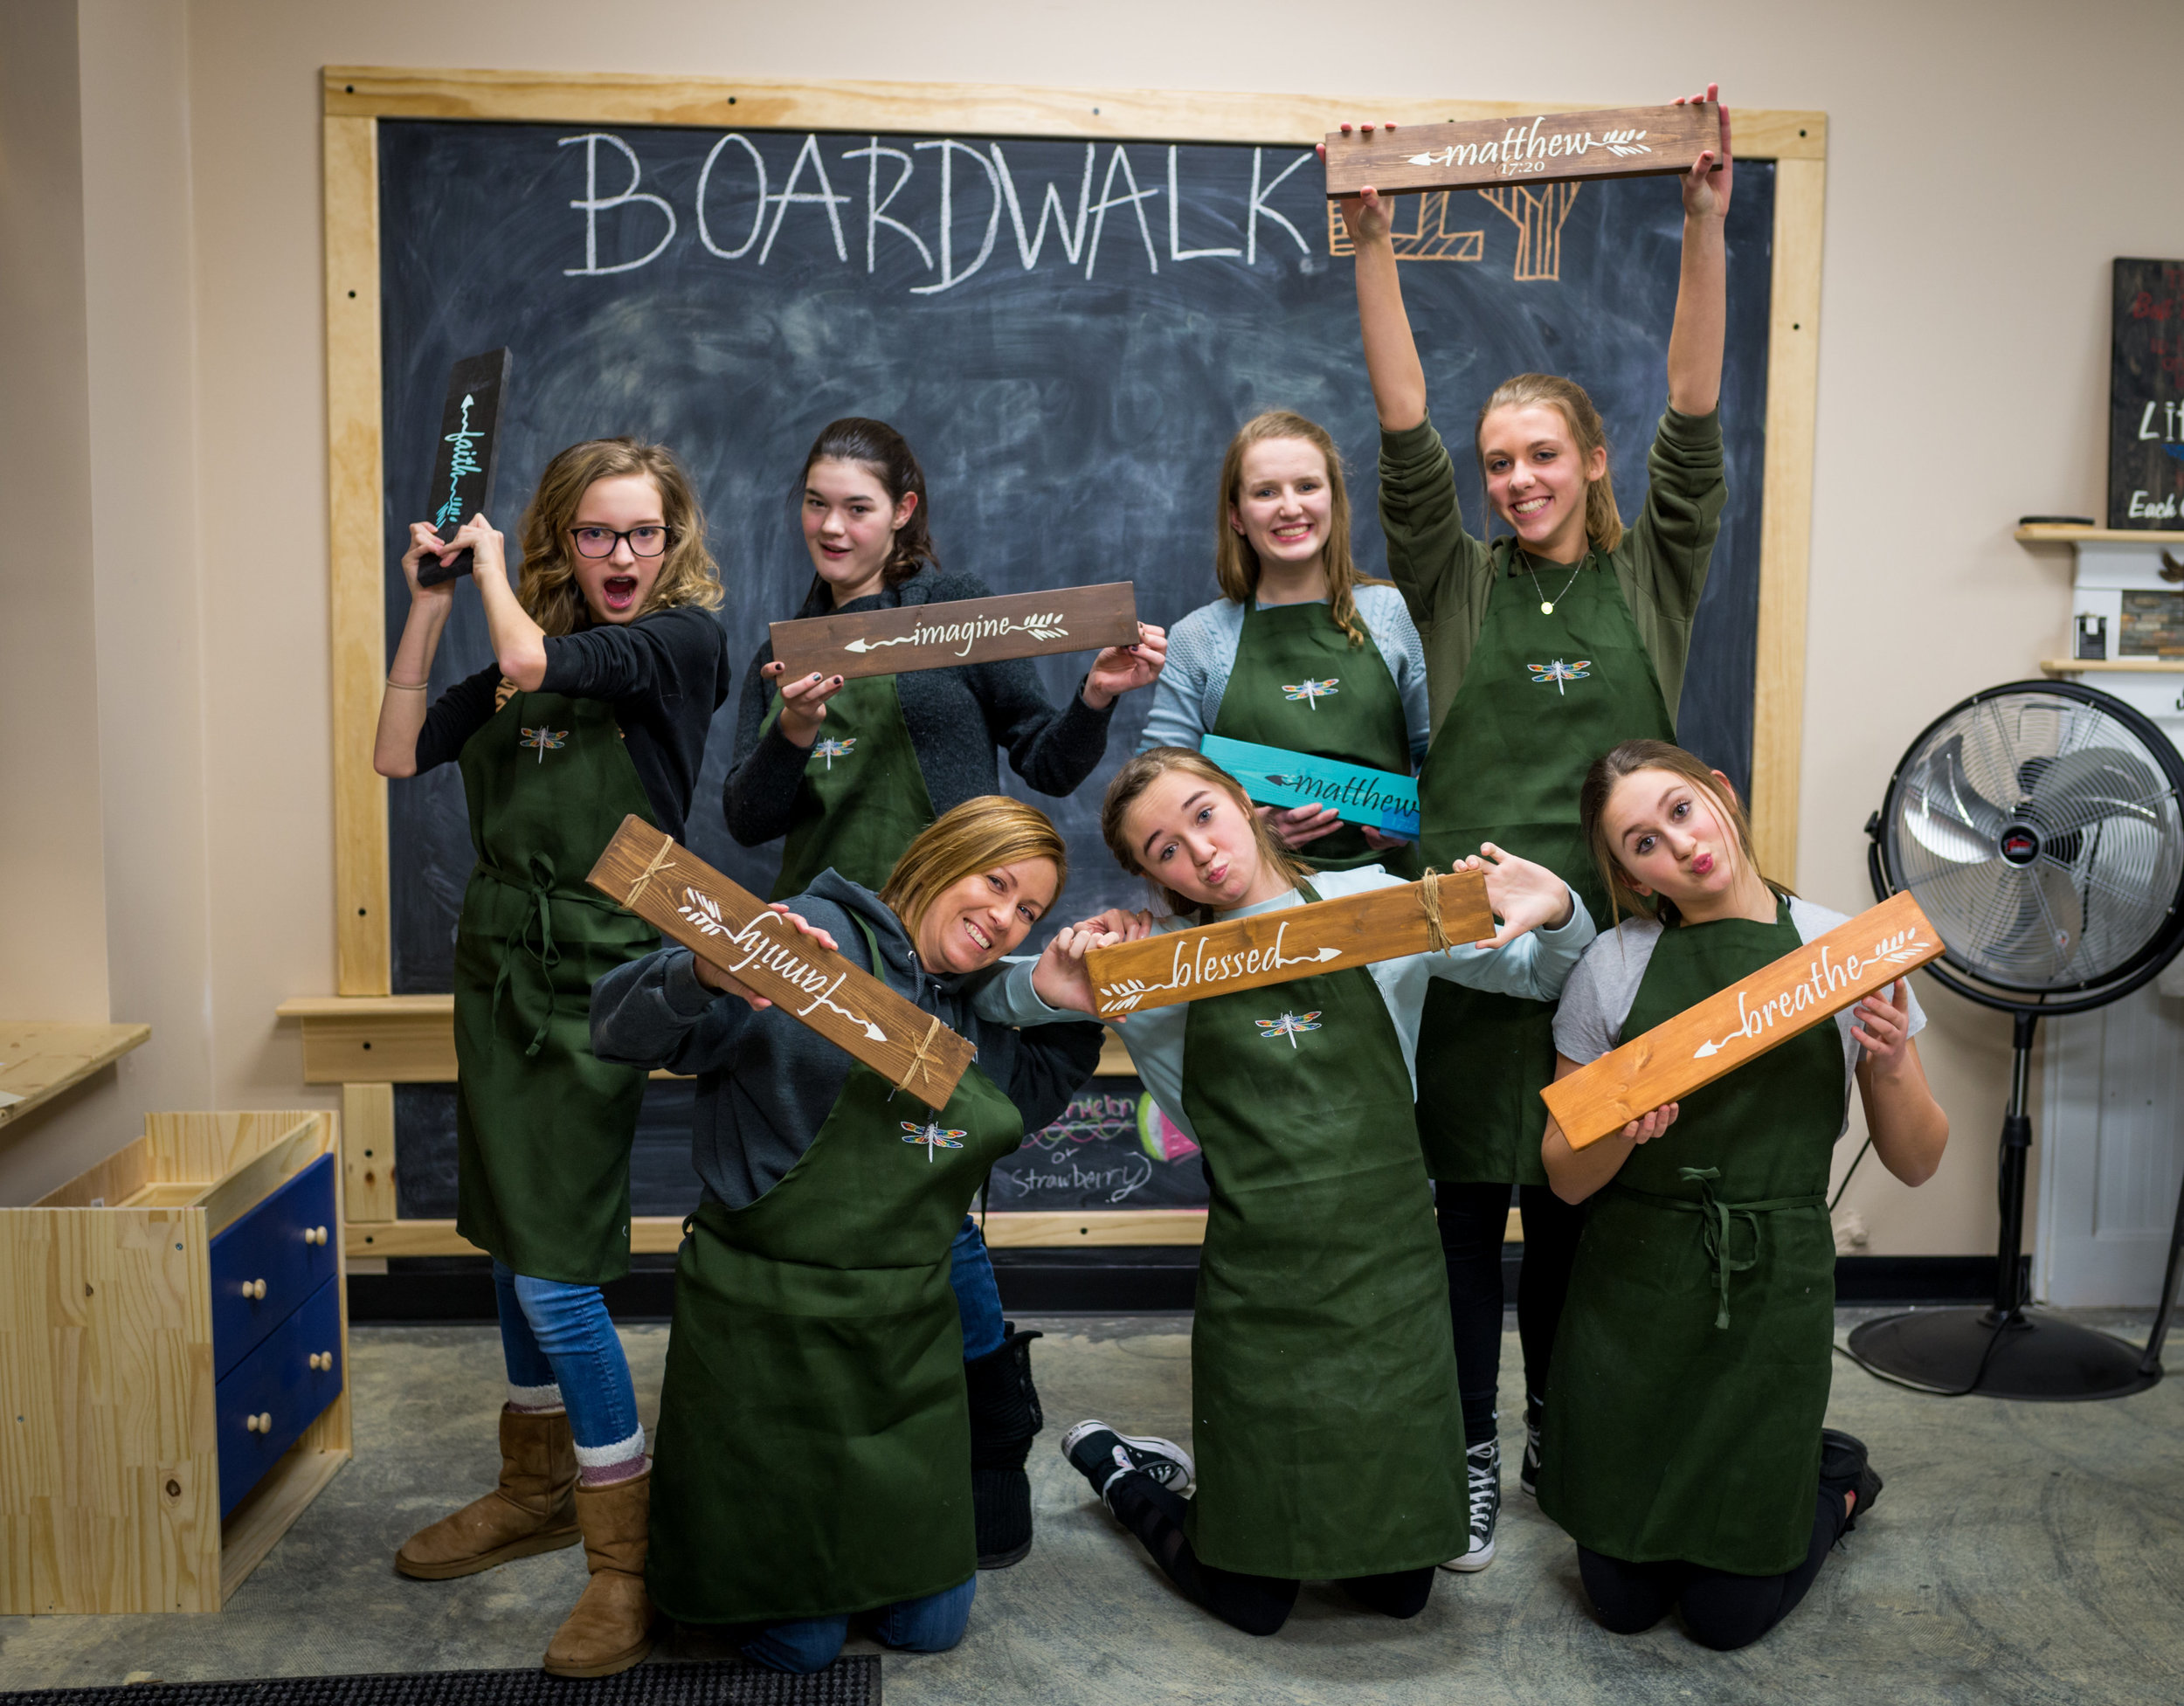 BoardwalkDIYstudio1.31.18-0050.jpg